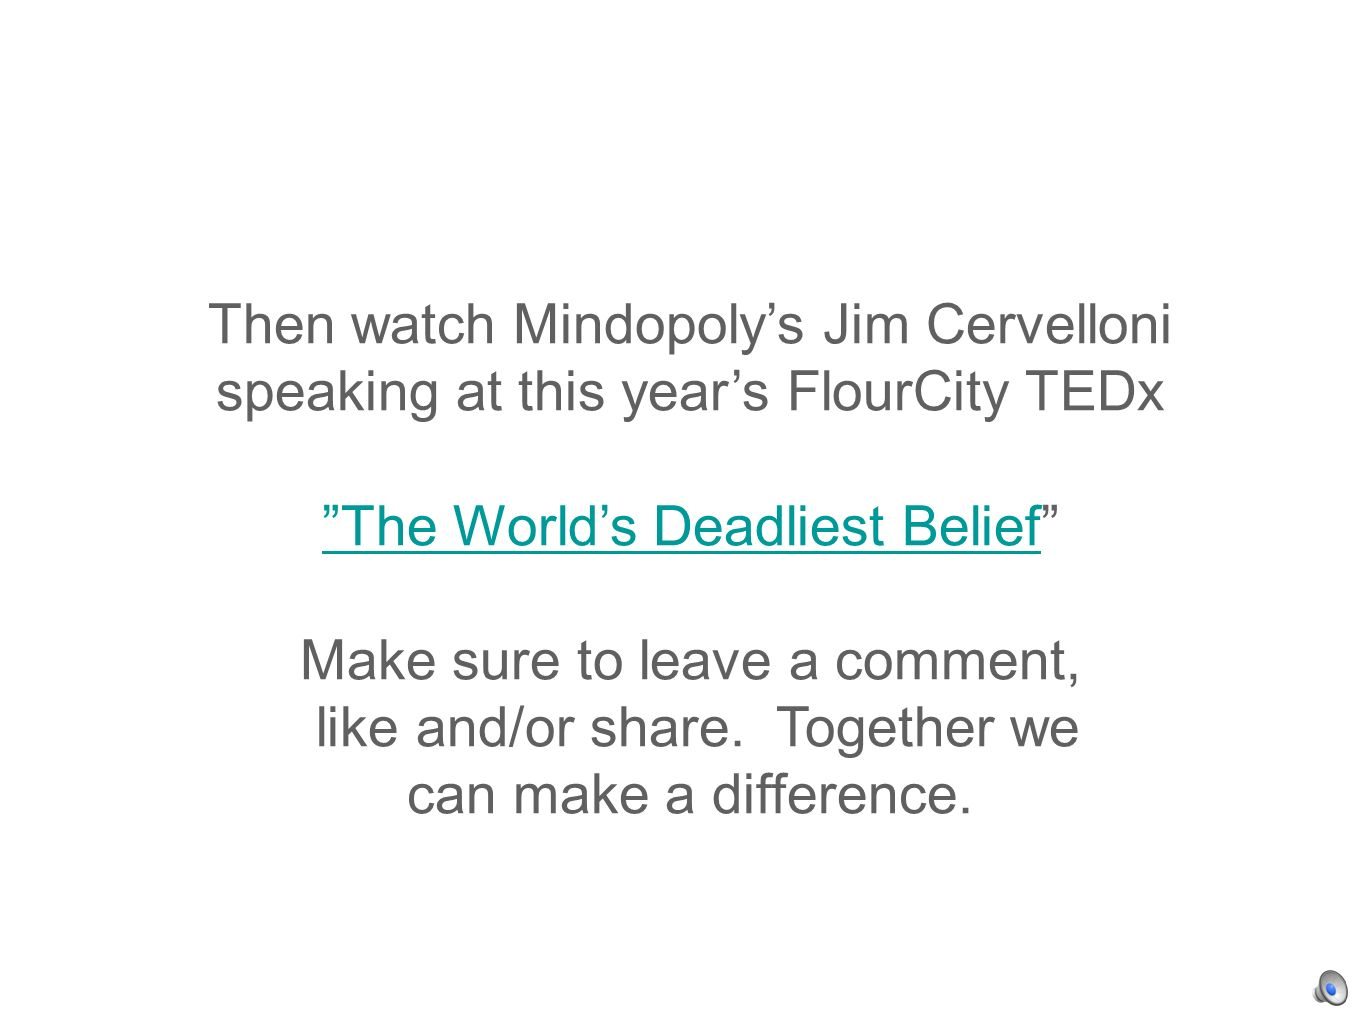 Then watch Mindopolys Jim Cervelloni speaking at this years FlourCity TEDx The Worlds Deadliest Belief Make sure to leave a comment, like and/or share.